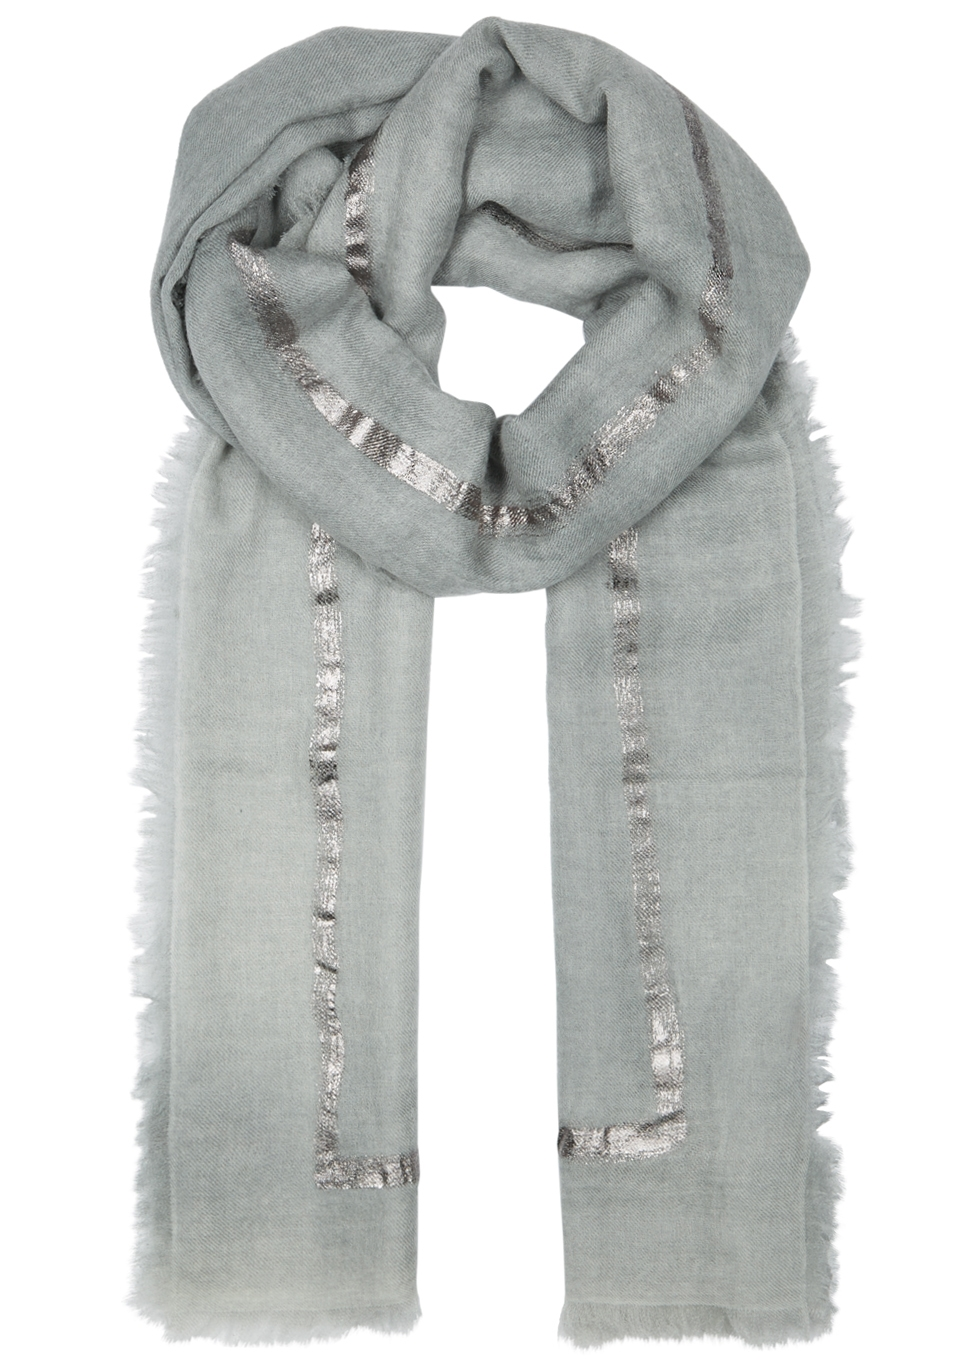 AMA PURE Righino Foil-Print Cashmere Scarf in Dark Grey